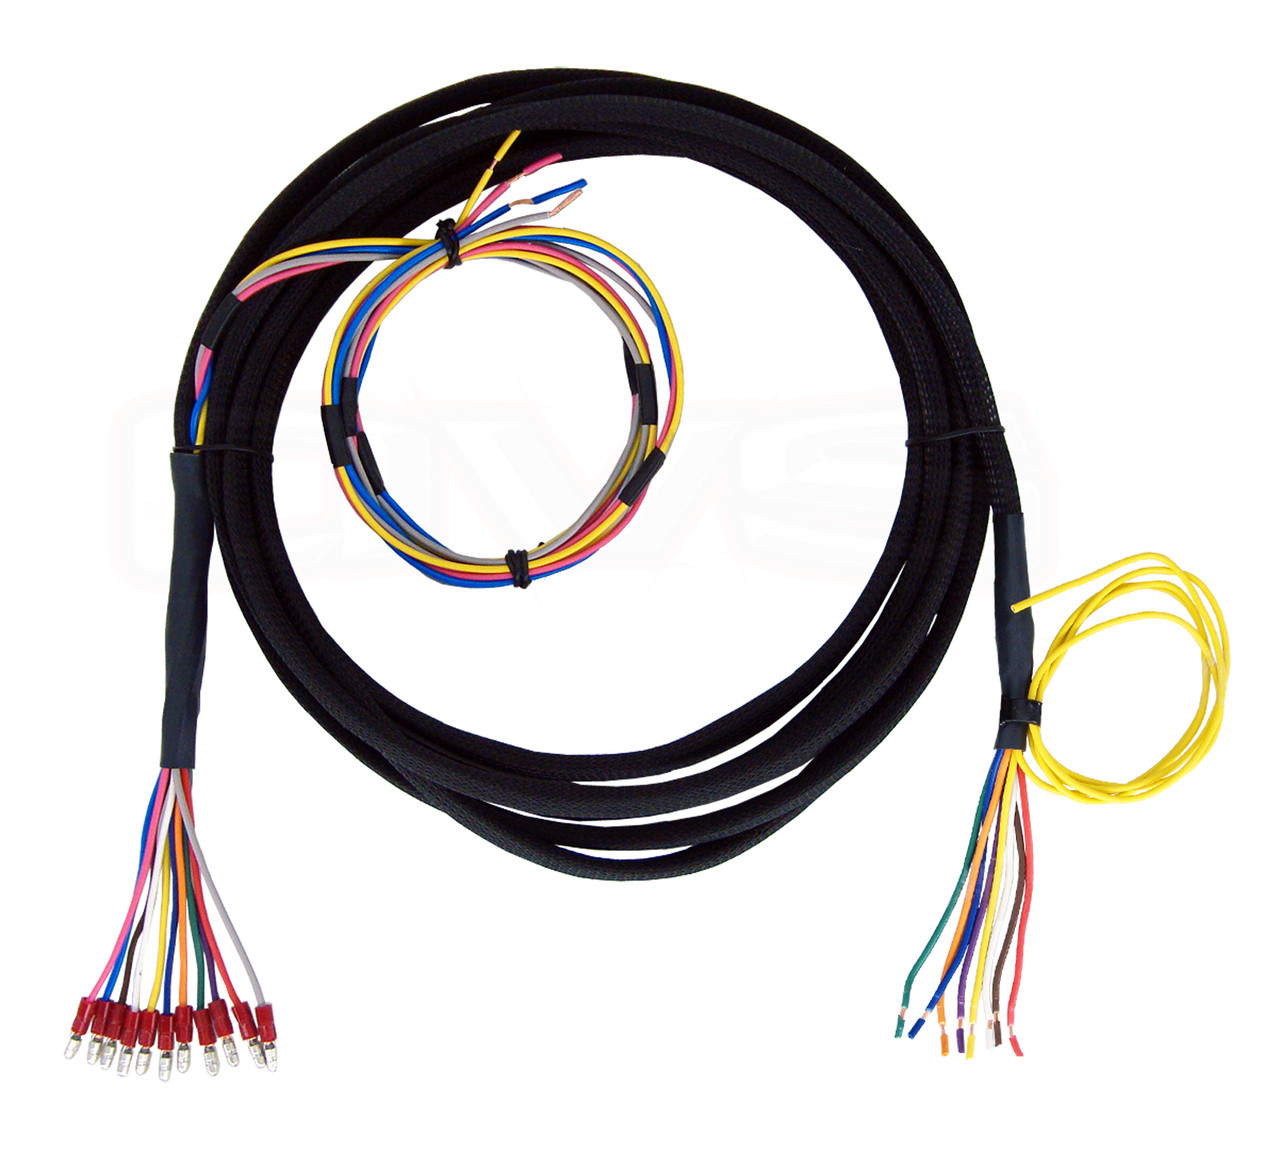 small resolution of avs valve wiring harness 10 15 20 universal to avs 7 switch rh avsontheweb com 7 wire trailer wiring harness 4 plug wiring harness diagram